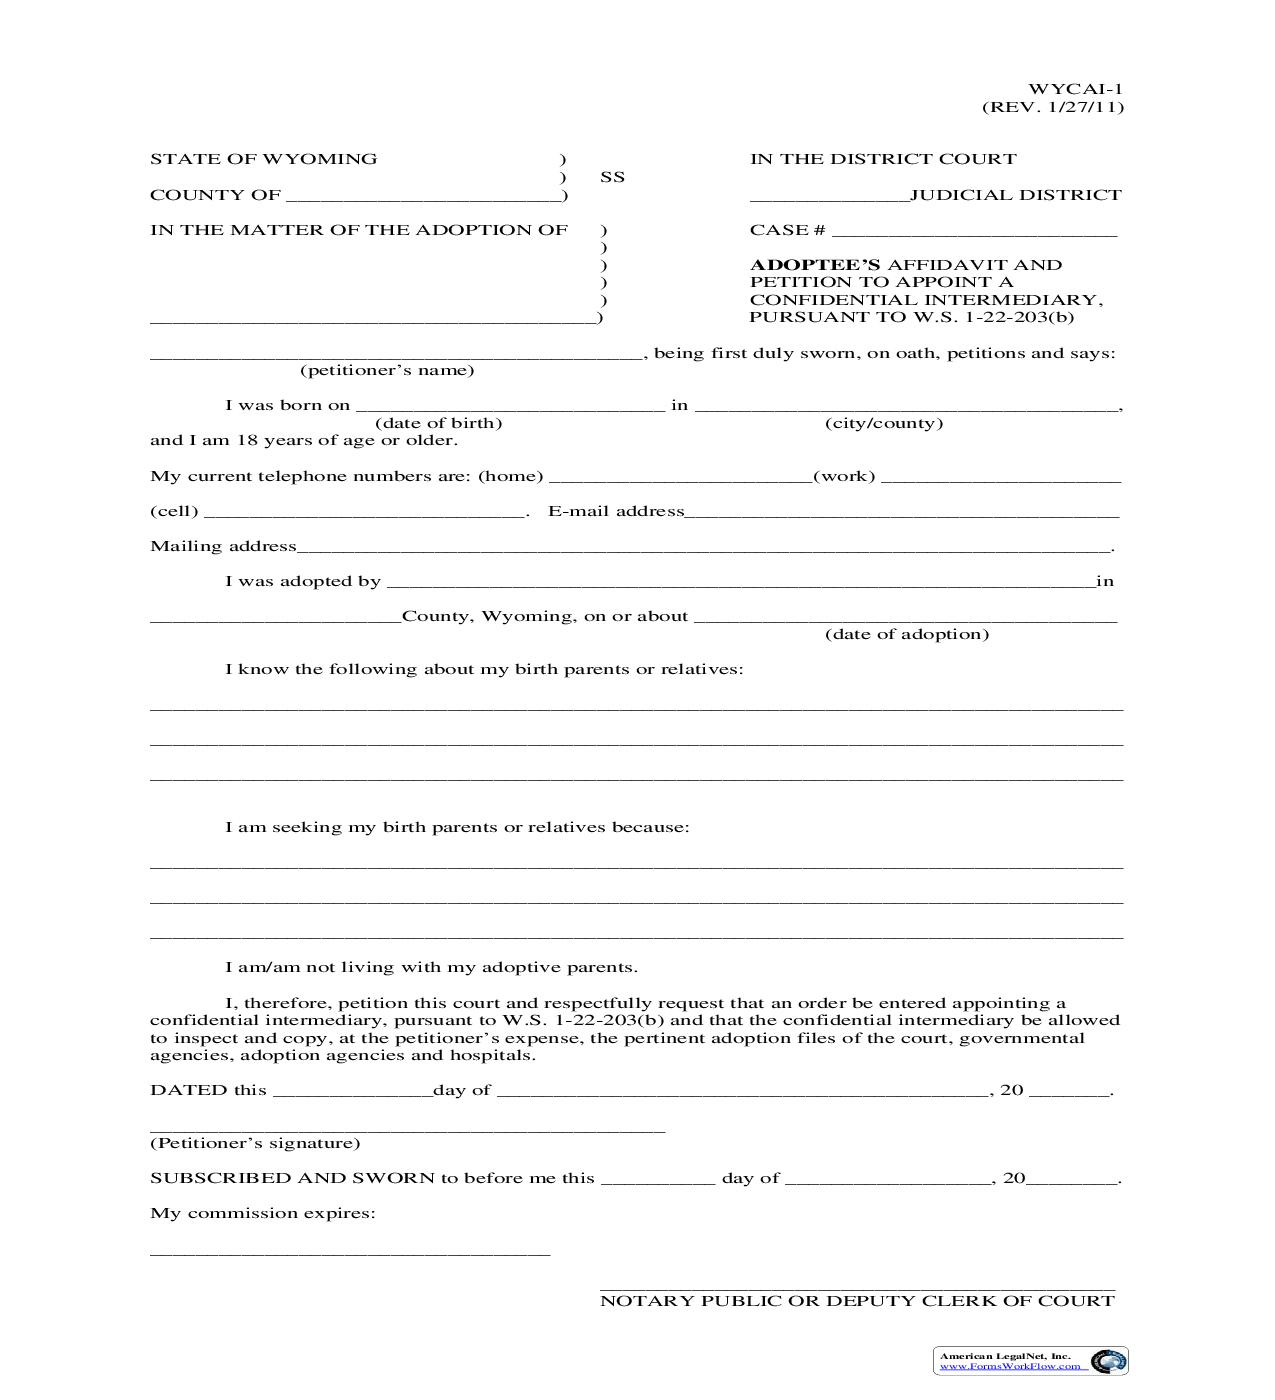 Adoptees Affidavit And Petition To Appoint A Confidential Intermediary {WYCAI-1} | Pdf Fpdf Doc Docx | Wyoming